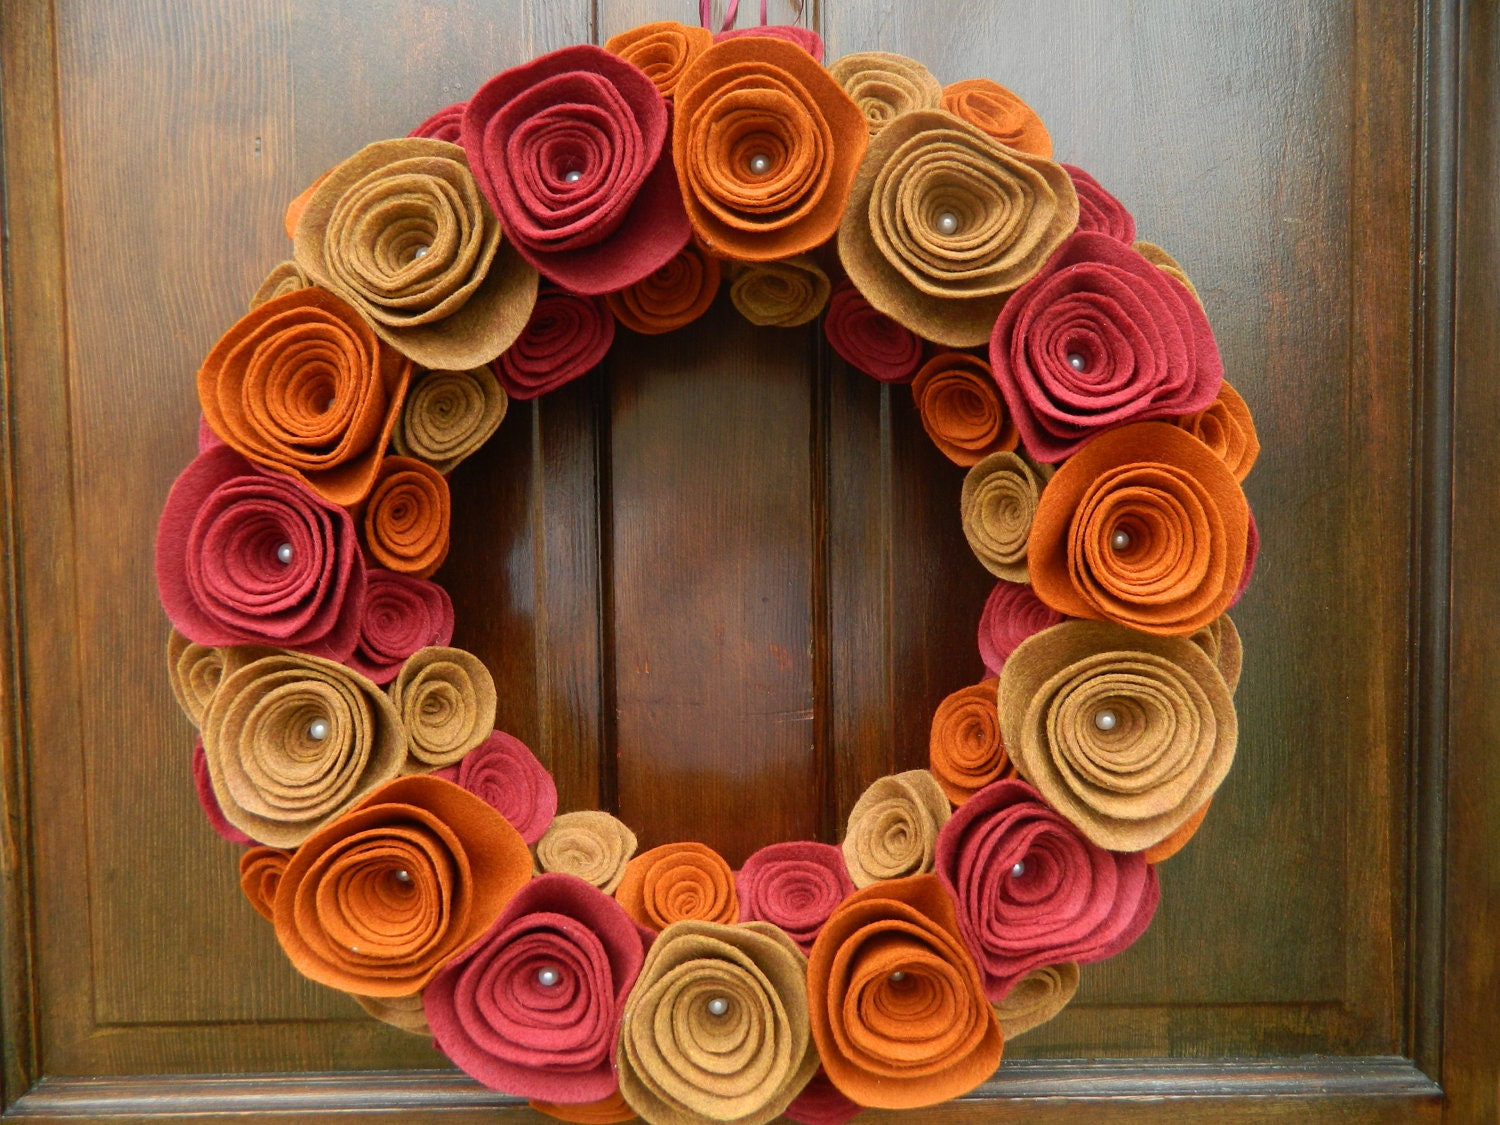 Fall Wreath - Autumn Wreath - Foliage Wreath in Copper Canyon, Copper Kettle and Ruby  18 inch - WreathinkGifting